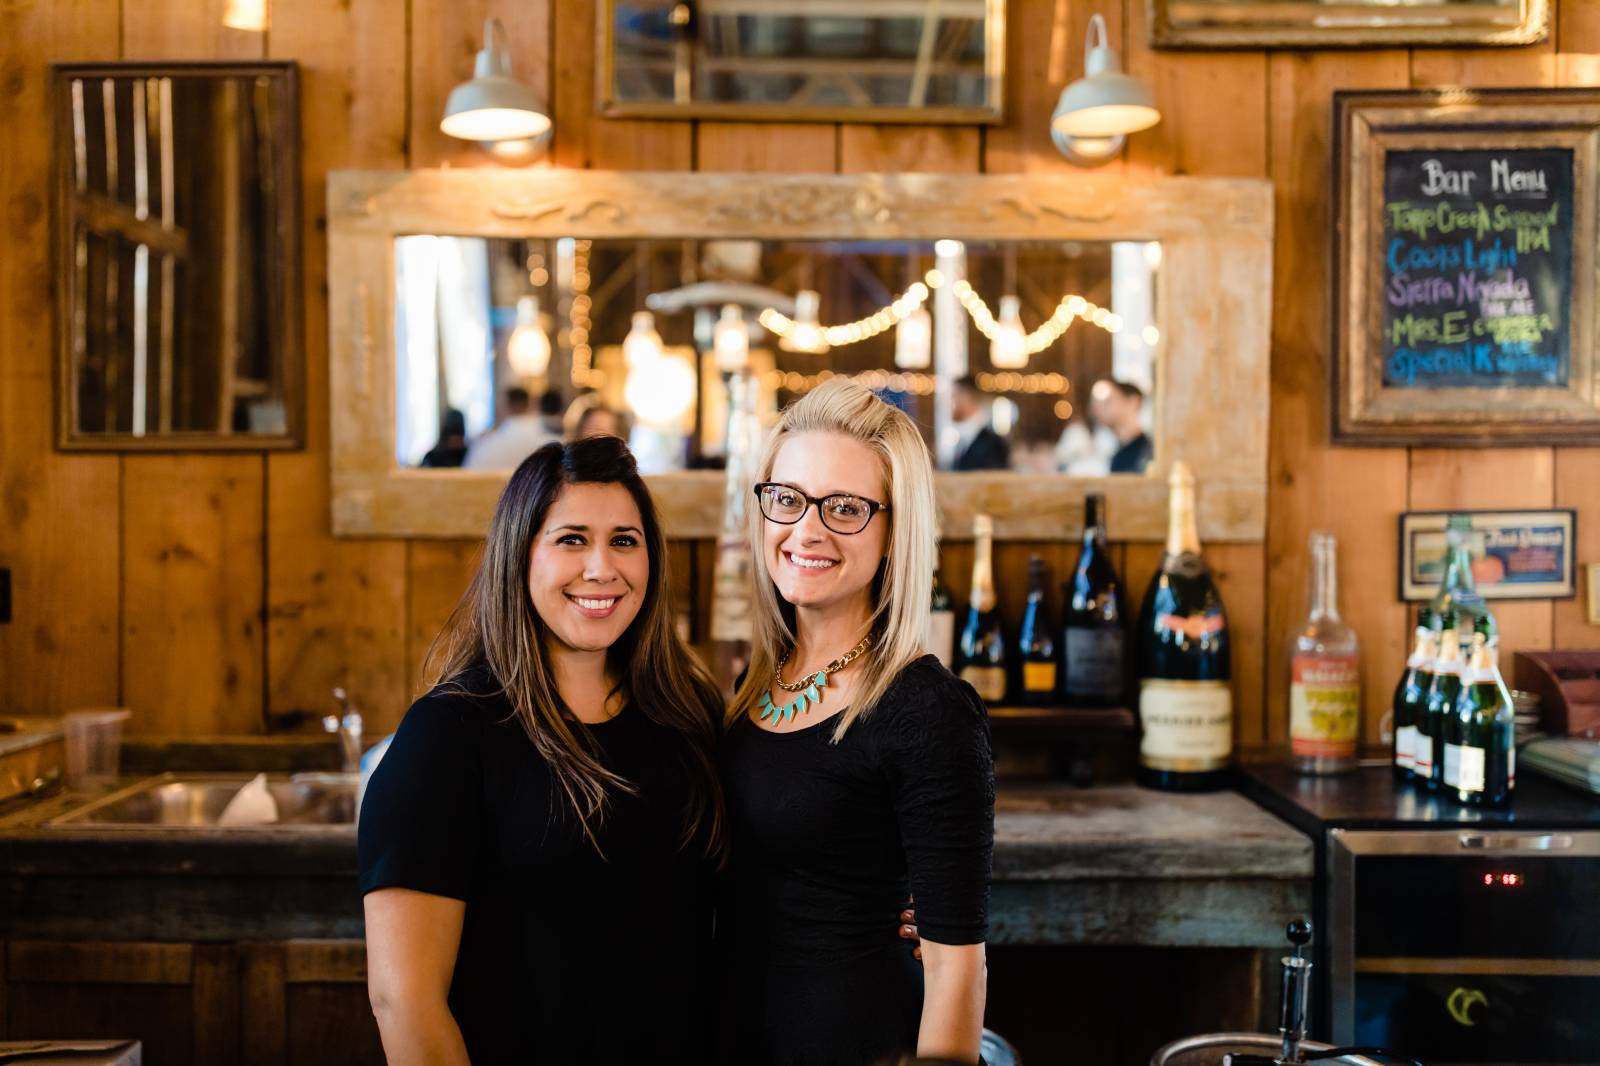 Two Girls at Cocktail and Beverage Shop | The Wedding Standard